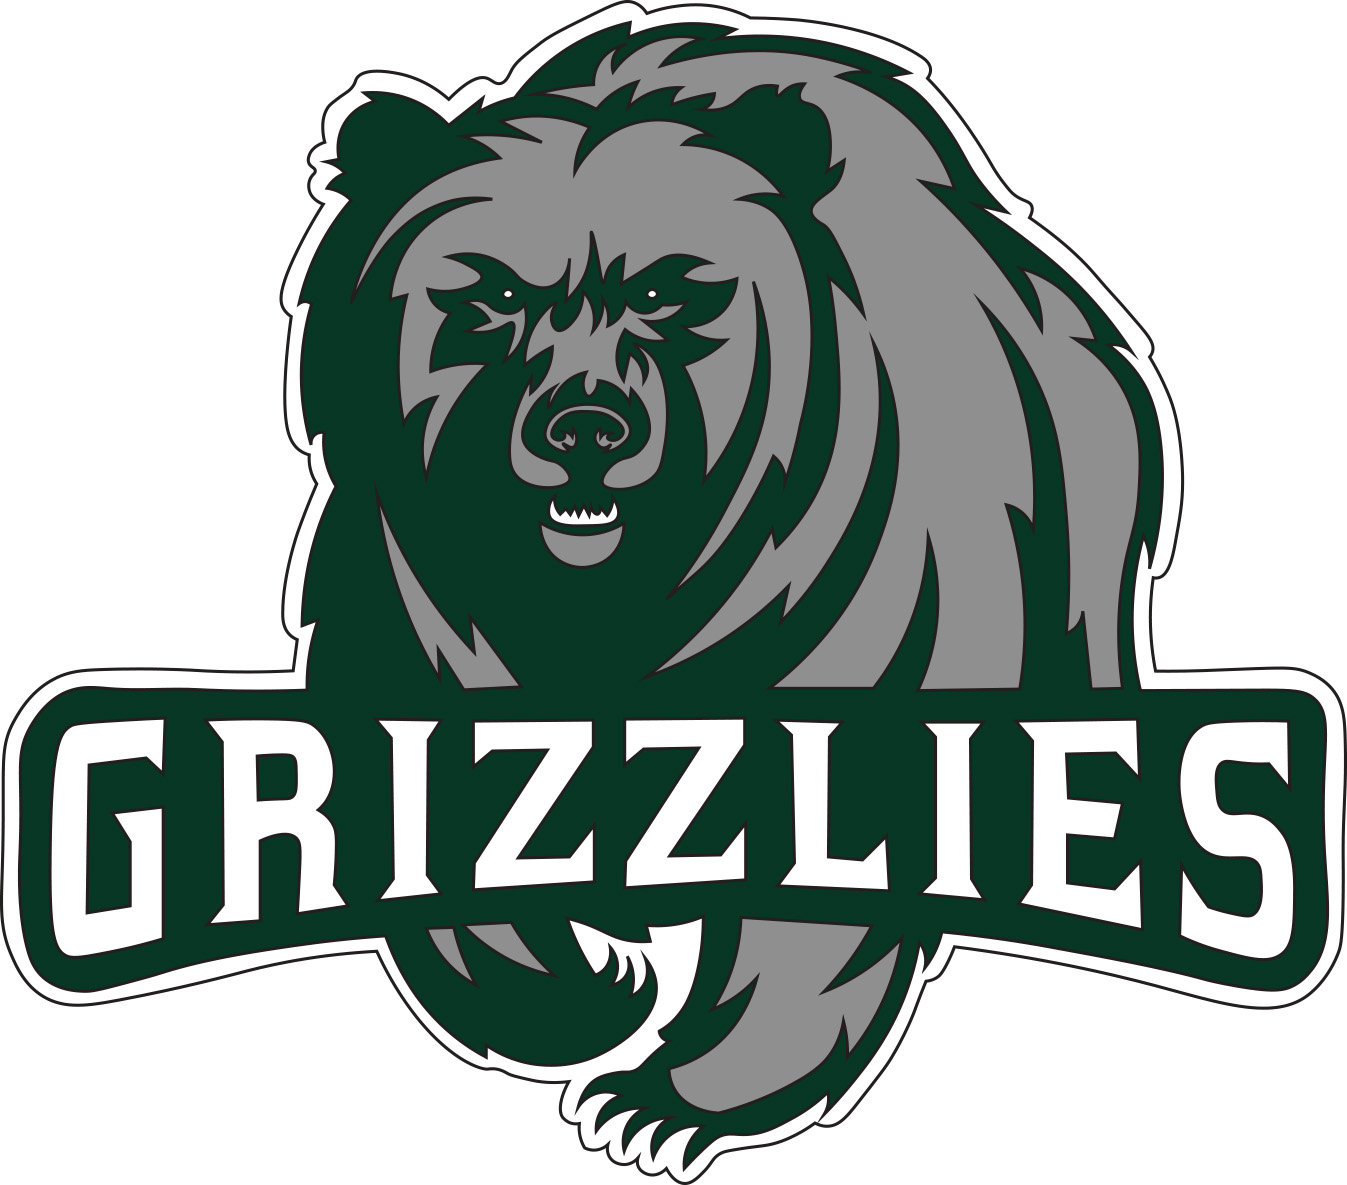 Pride of the Tribe! Go Grizzlies!